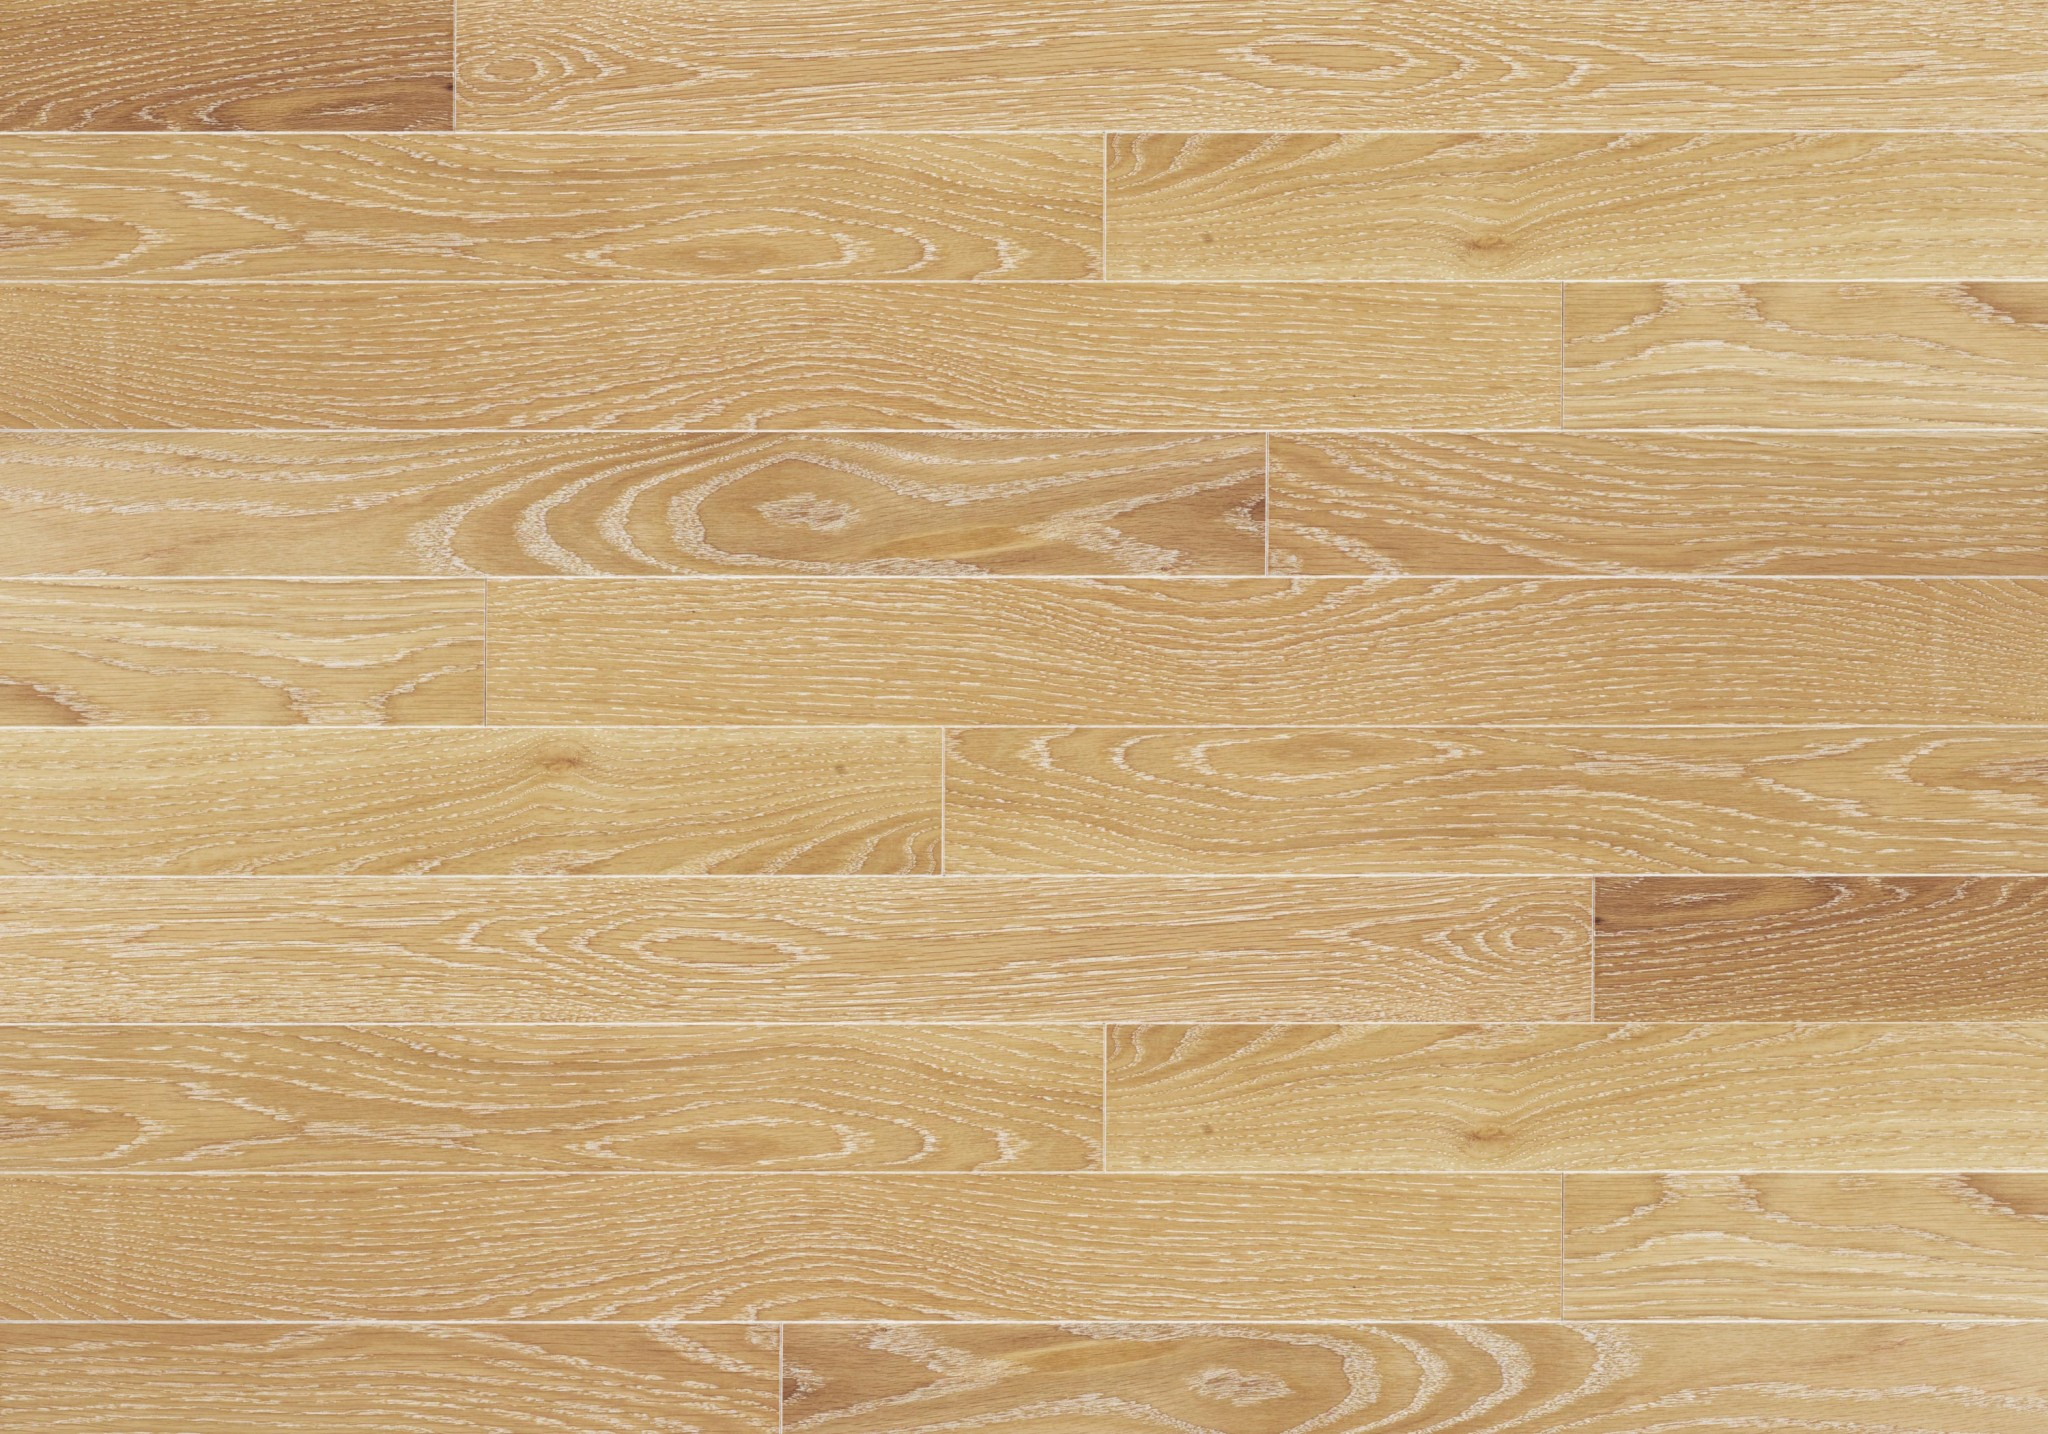 White Oak Hardwood Flooring Natural